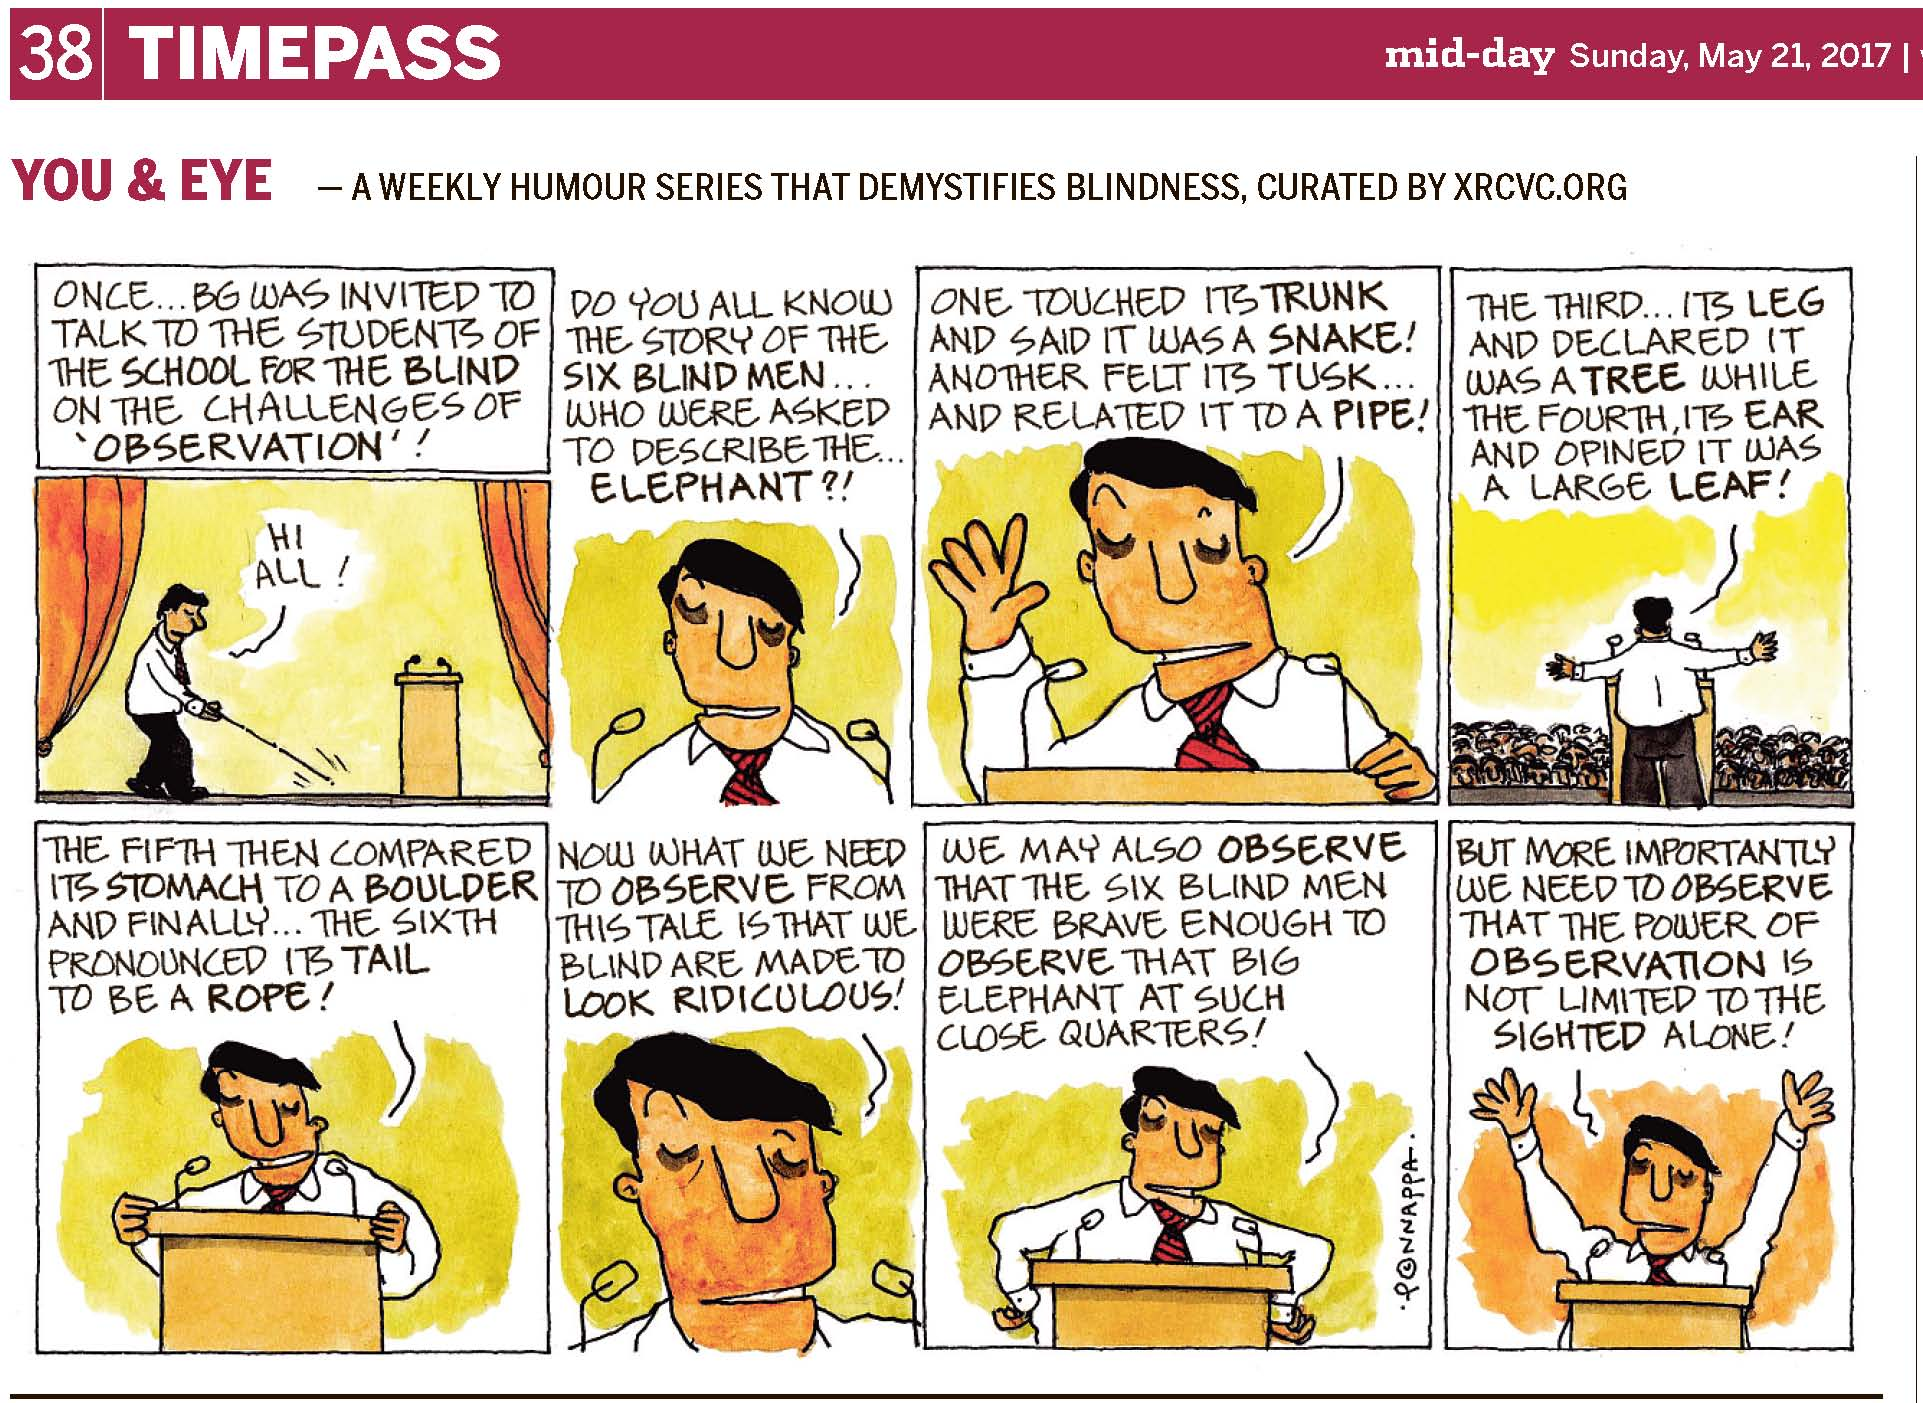 (top-left) 38 | TIMEPASS (top-right) mid-day Sunday, May 21, 2017 